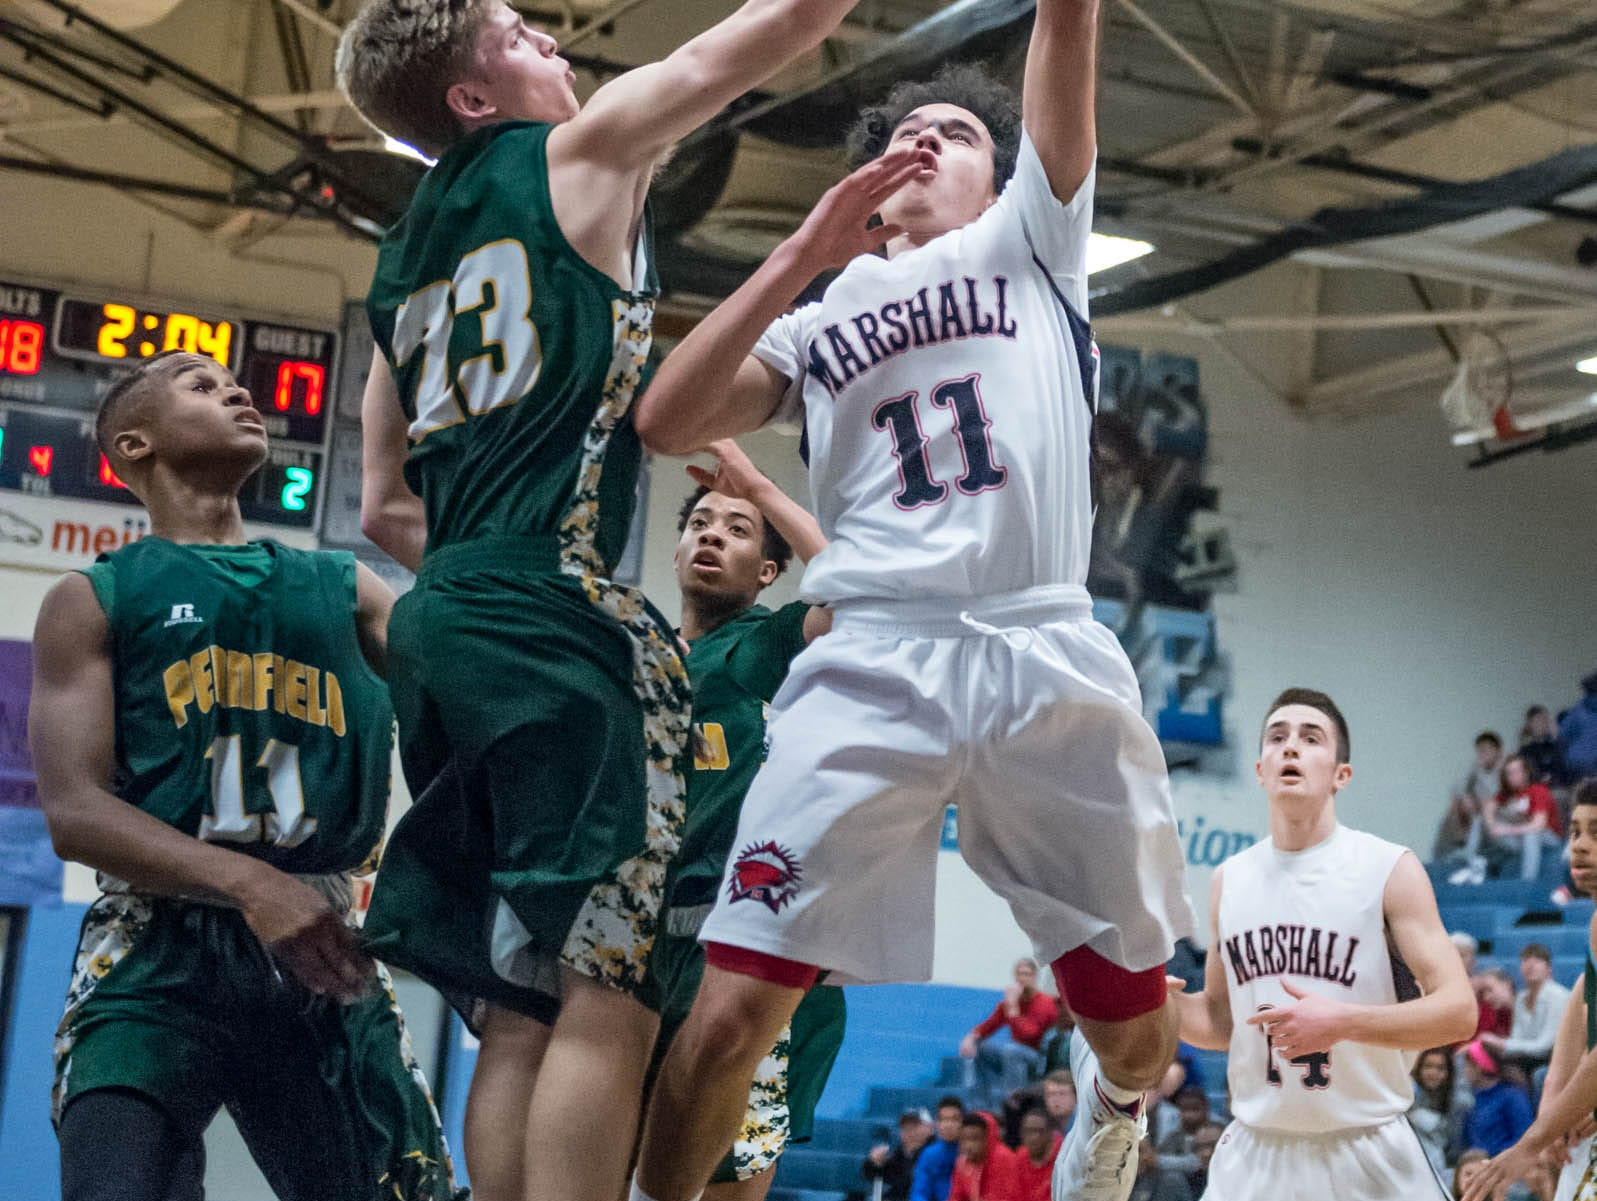 Marshall's Tyler Torrey (11) goes for the hoop while Pennfield's Grant Peterson (23) tries for the block during Monday's district game.